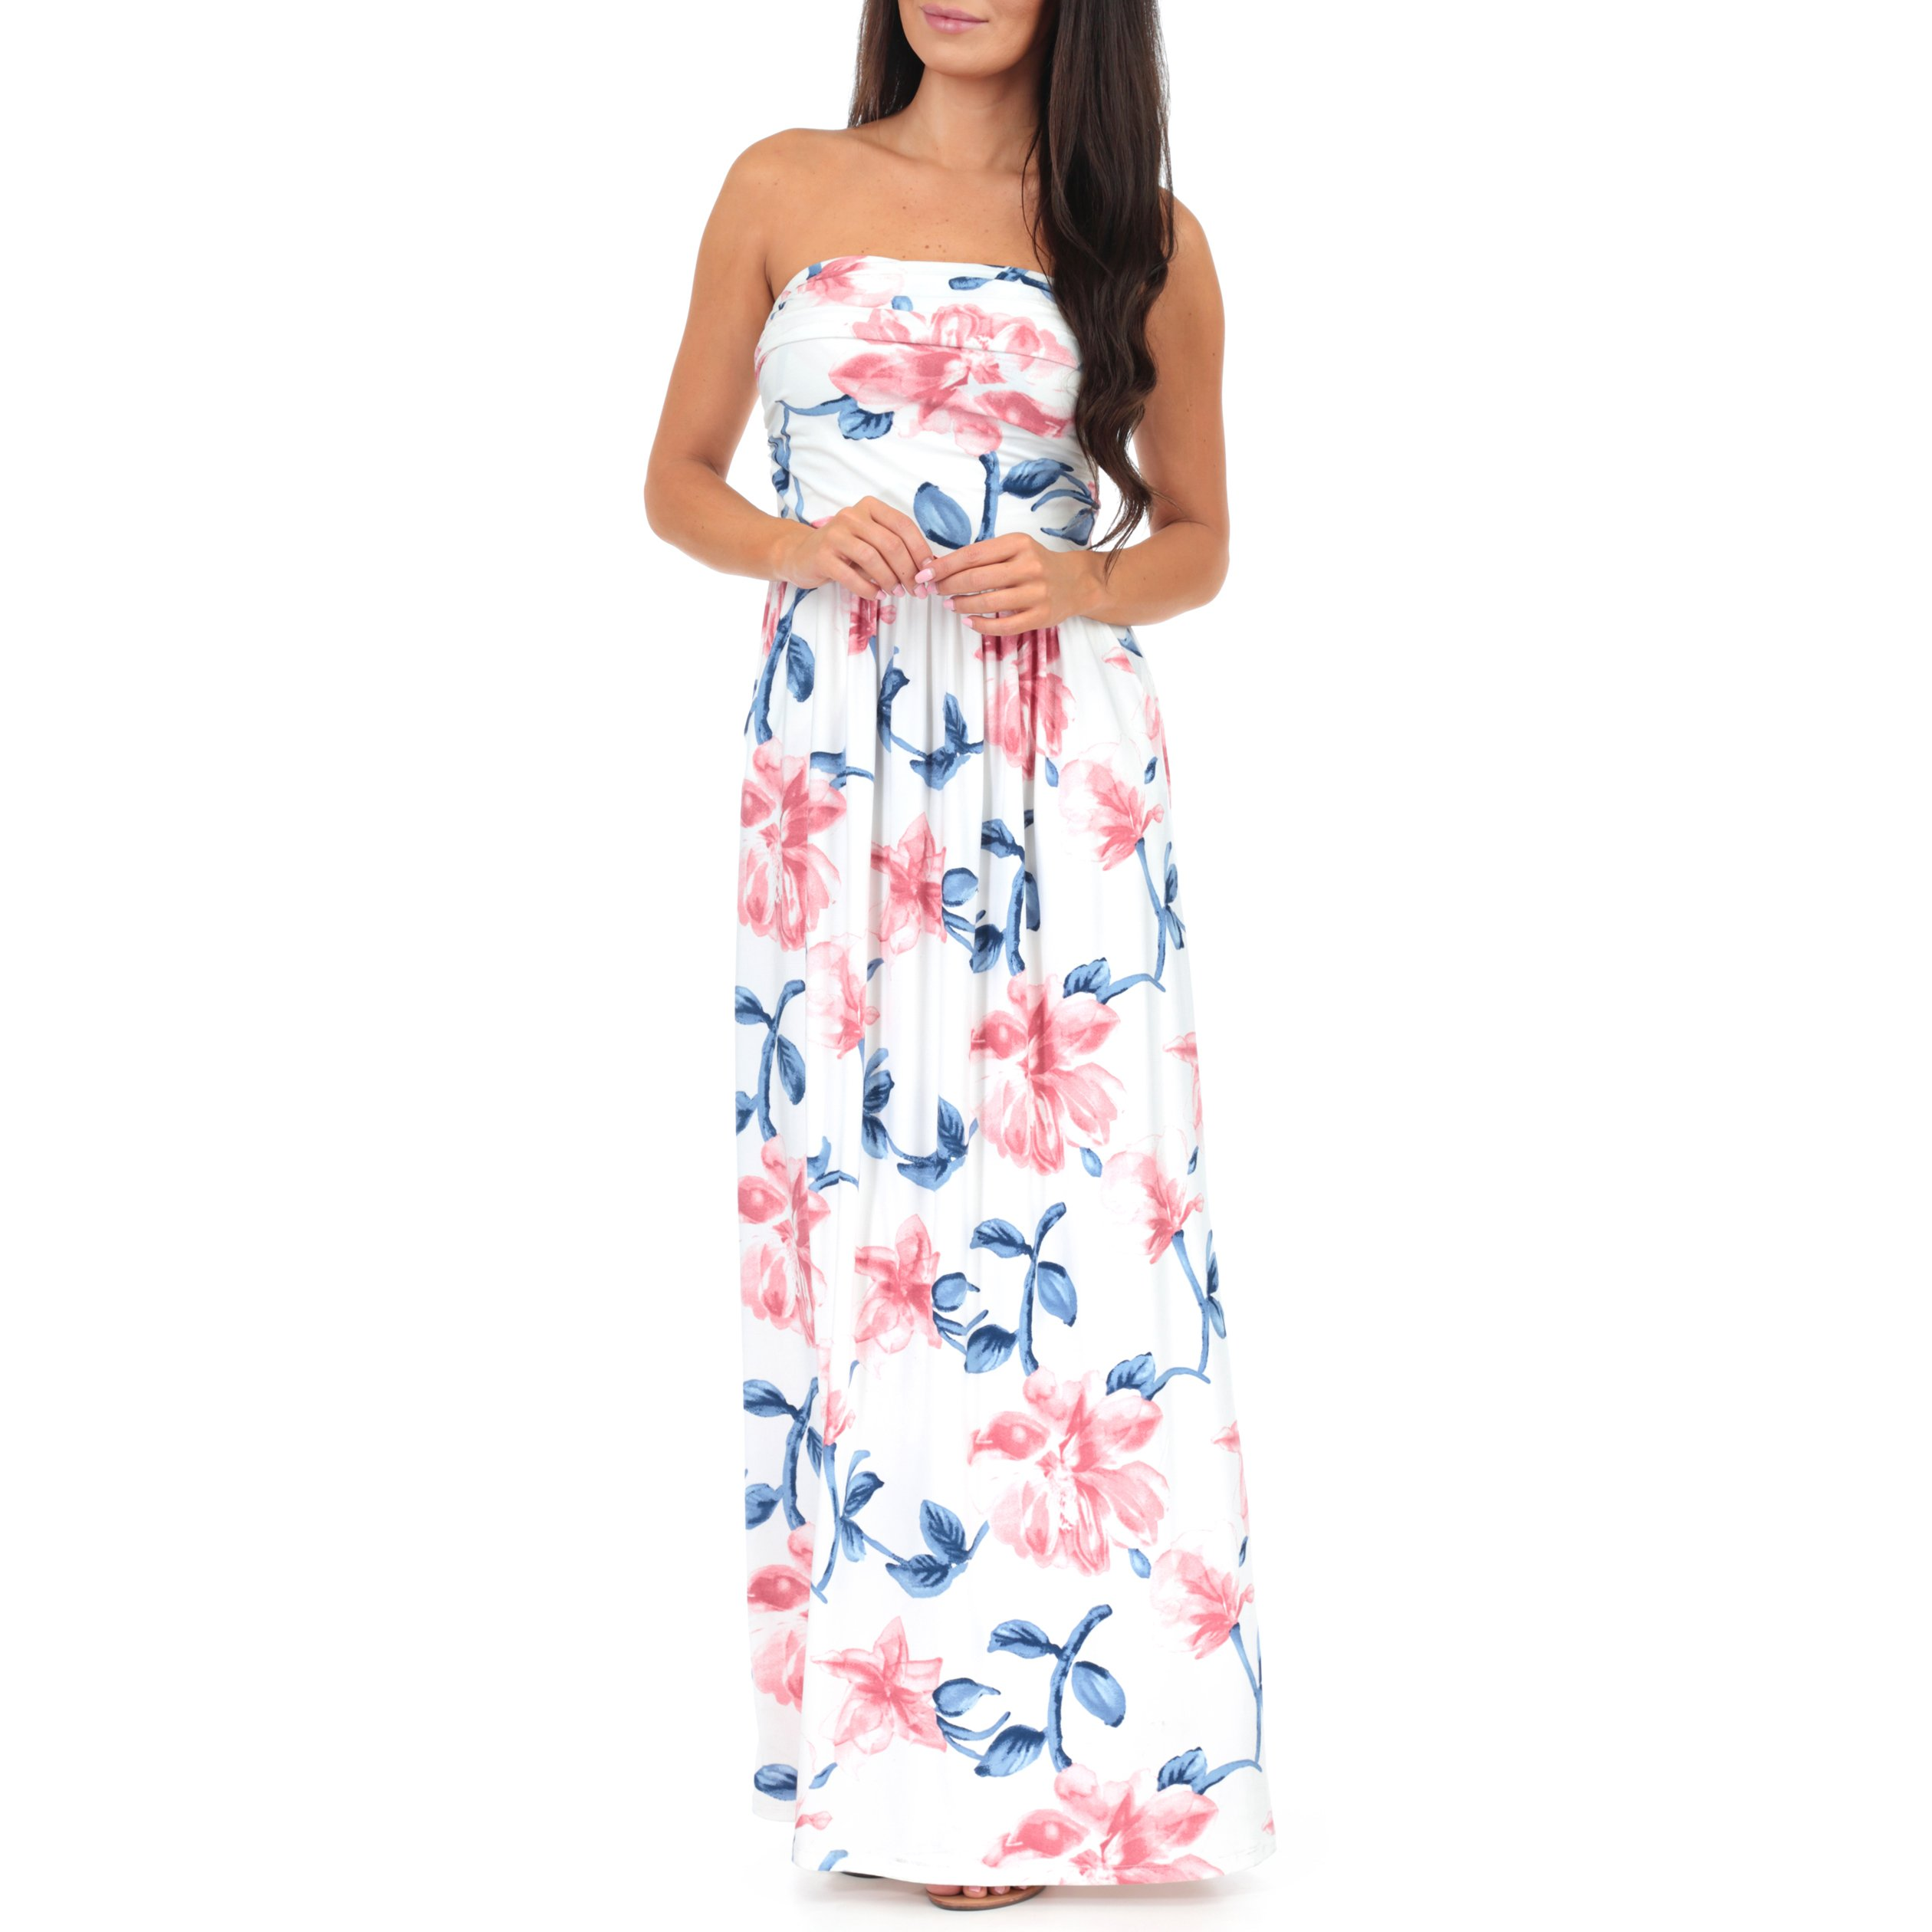 Women's Strapless Ruched Maxi Tube Maternity Dress with Pockets by Rags and Couture - Made in USA